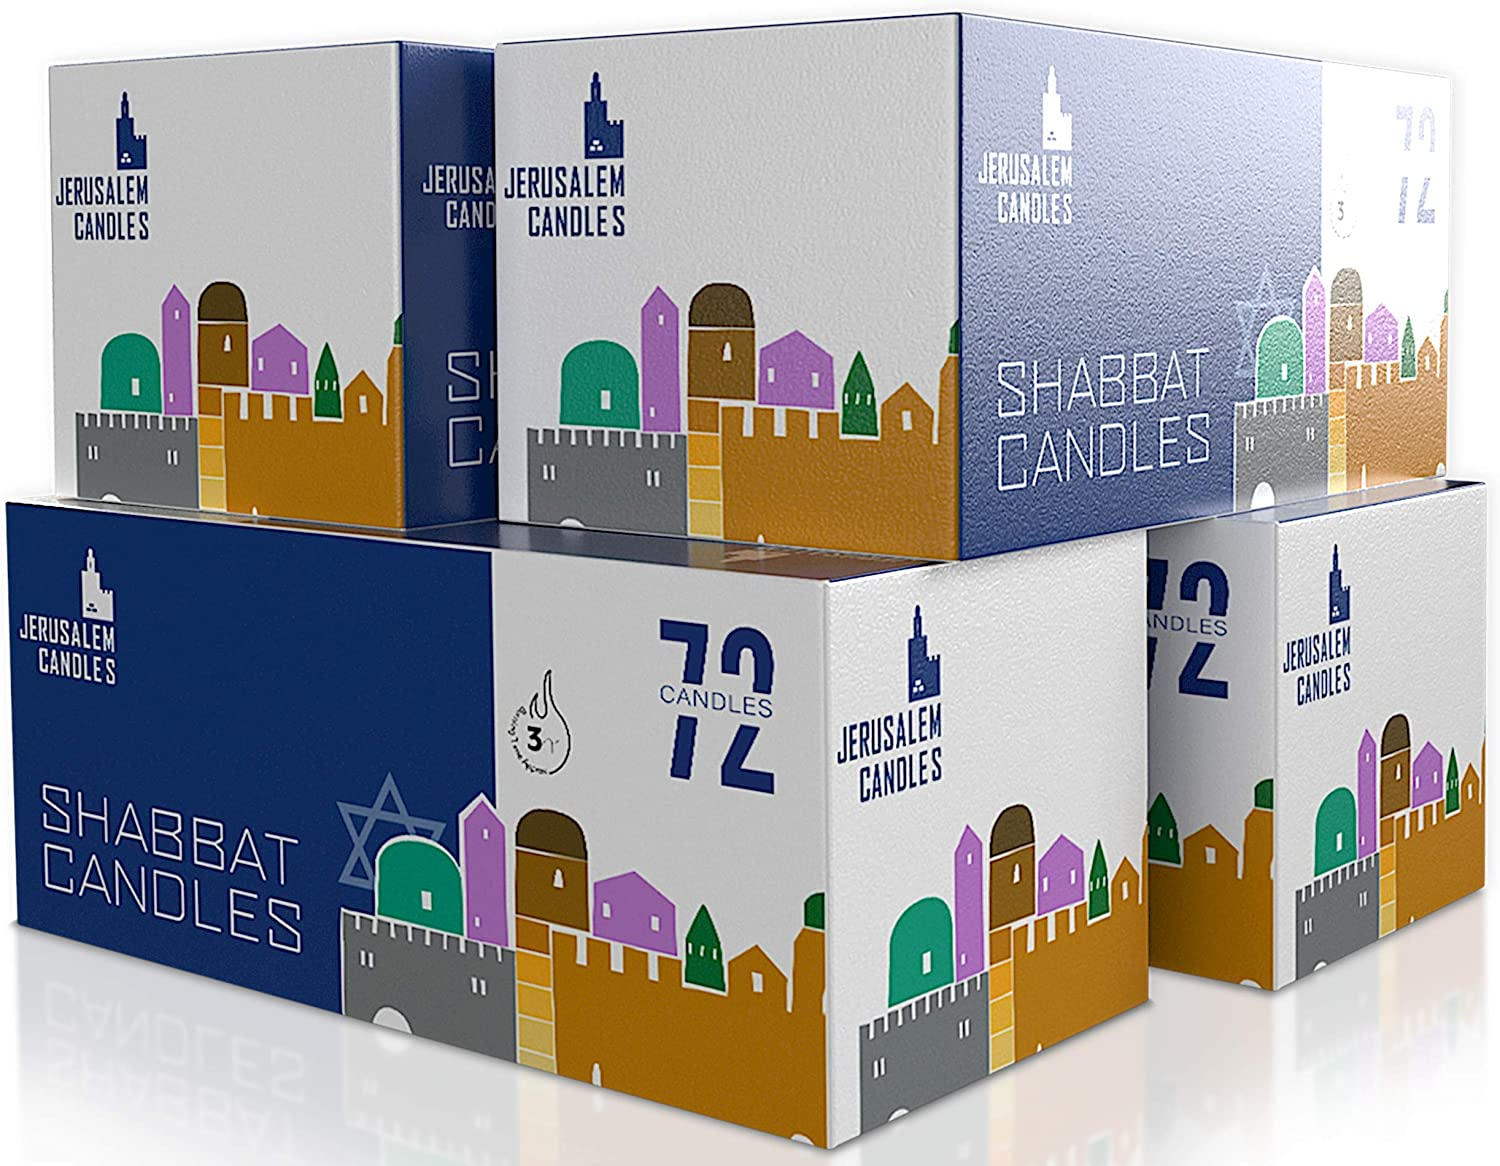 Shabbat Candles - Traditional Shabbos Candles - 3 Hour - 4-Pack x 72 Count, (288 Candles): Home Improvement